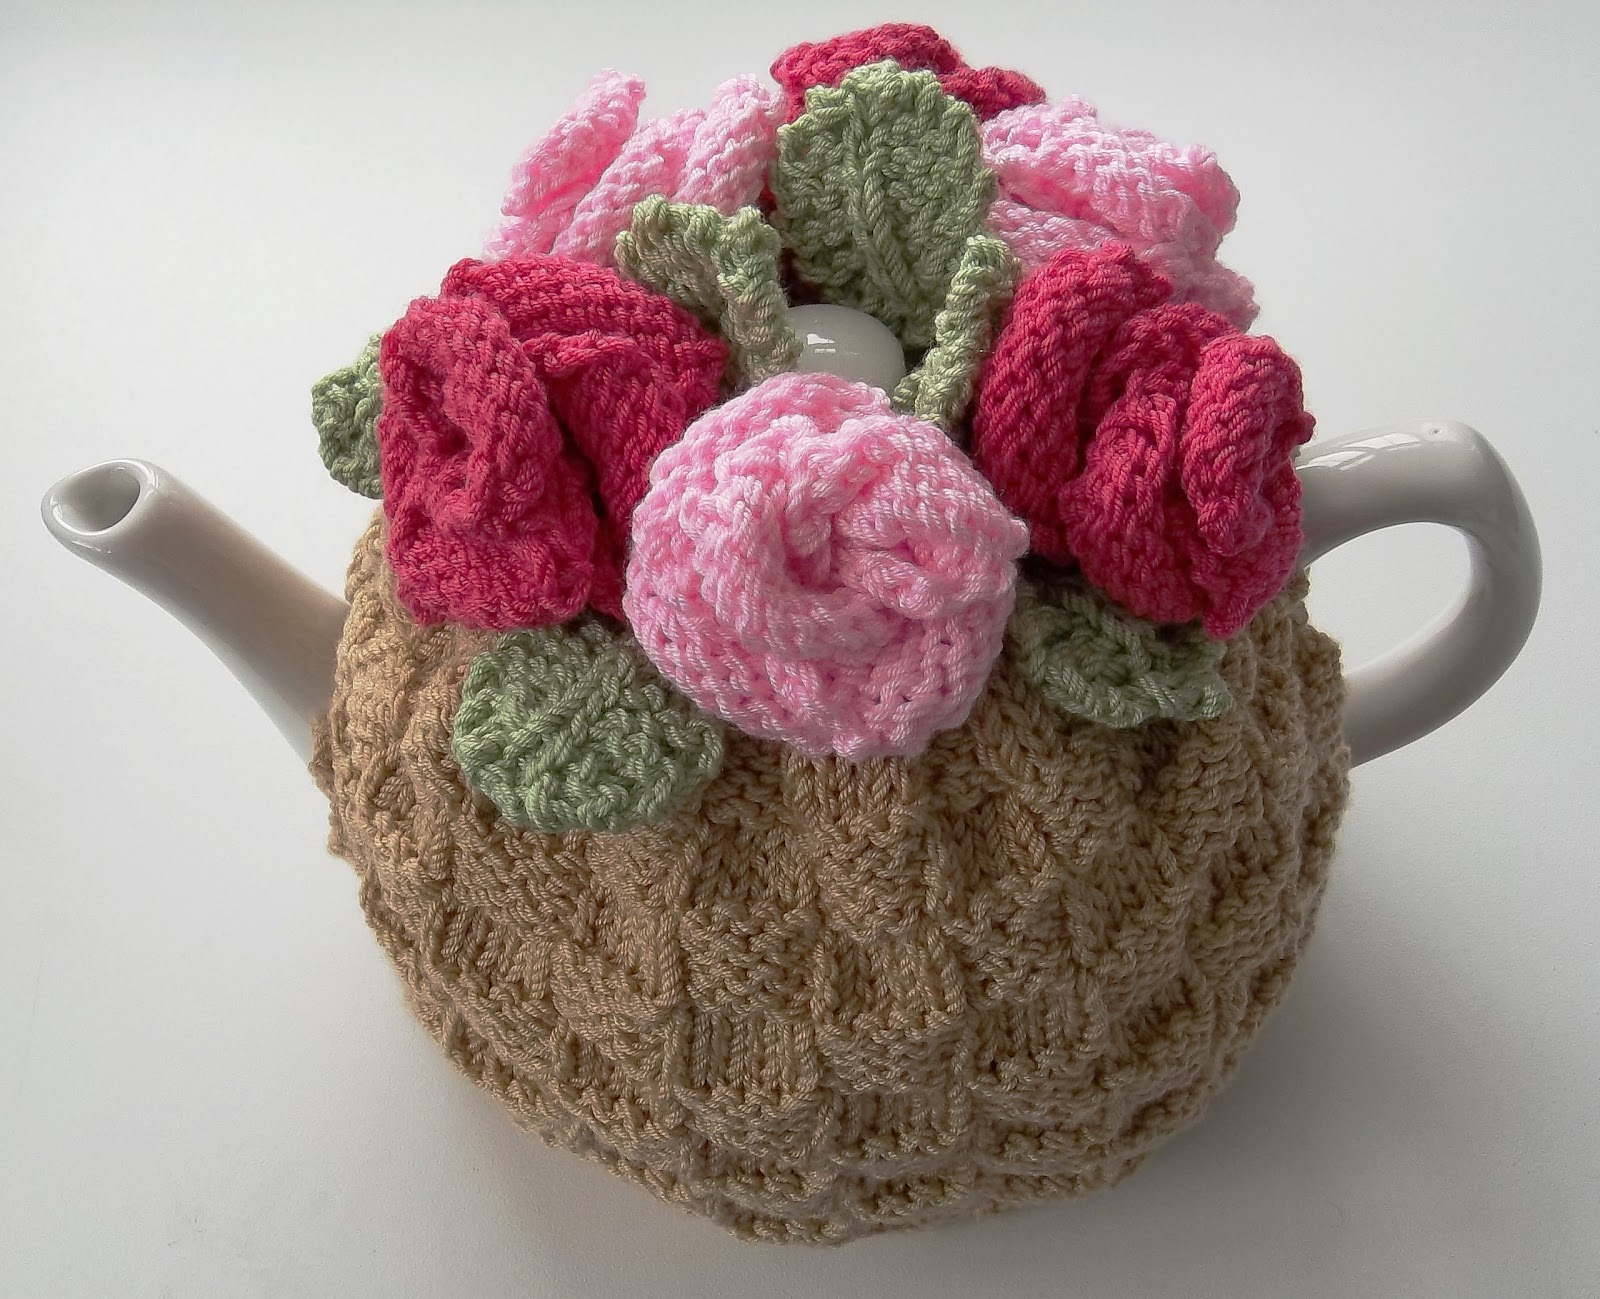 Tea Cosy Knitting Patterns Easy The Tea Rose Tea Cosy Hand Knitting Pattern